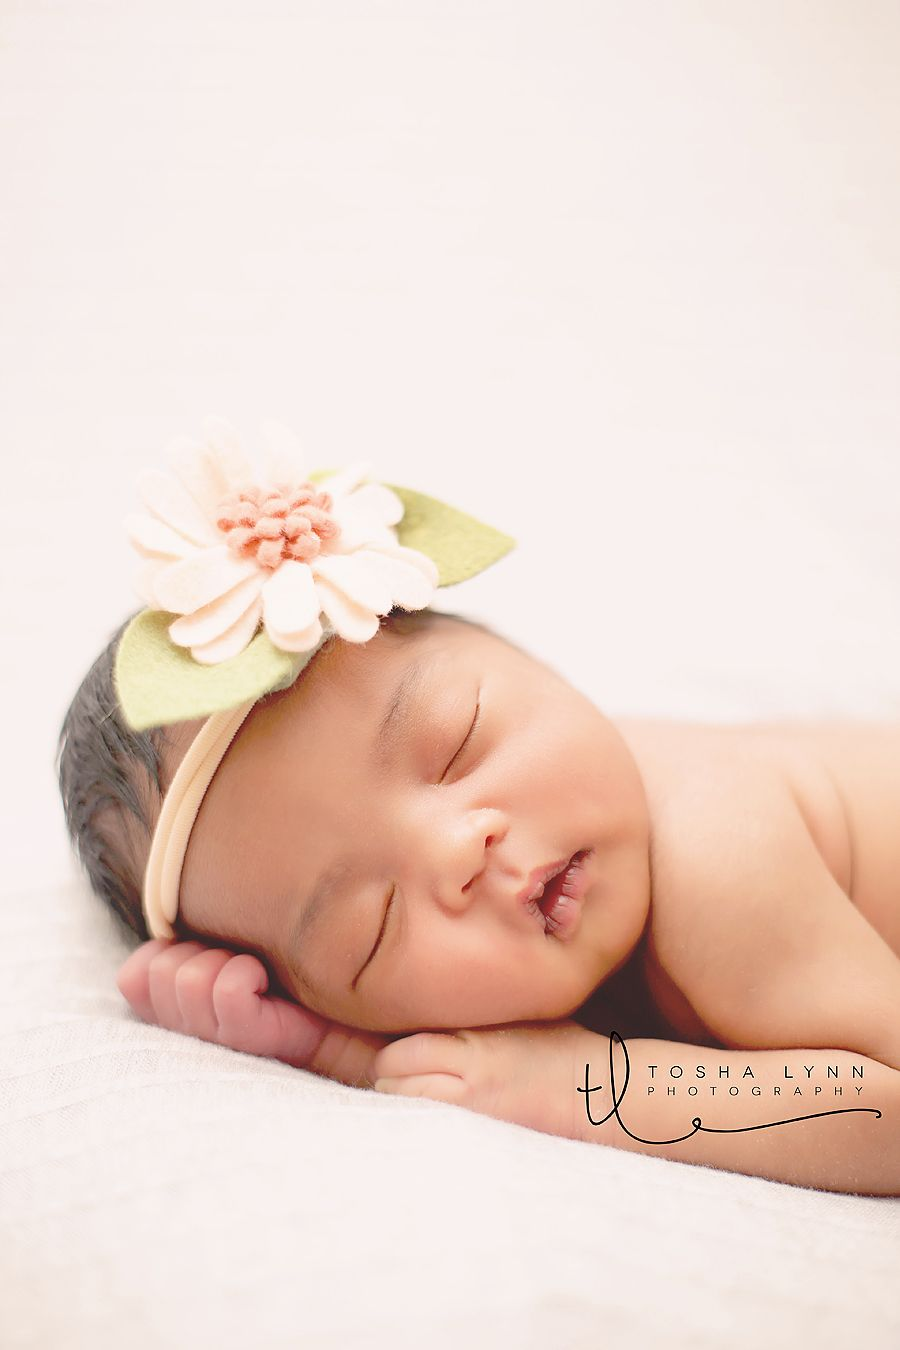 Baby athena elk grove newborn photographer tosha lynn photography